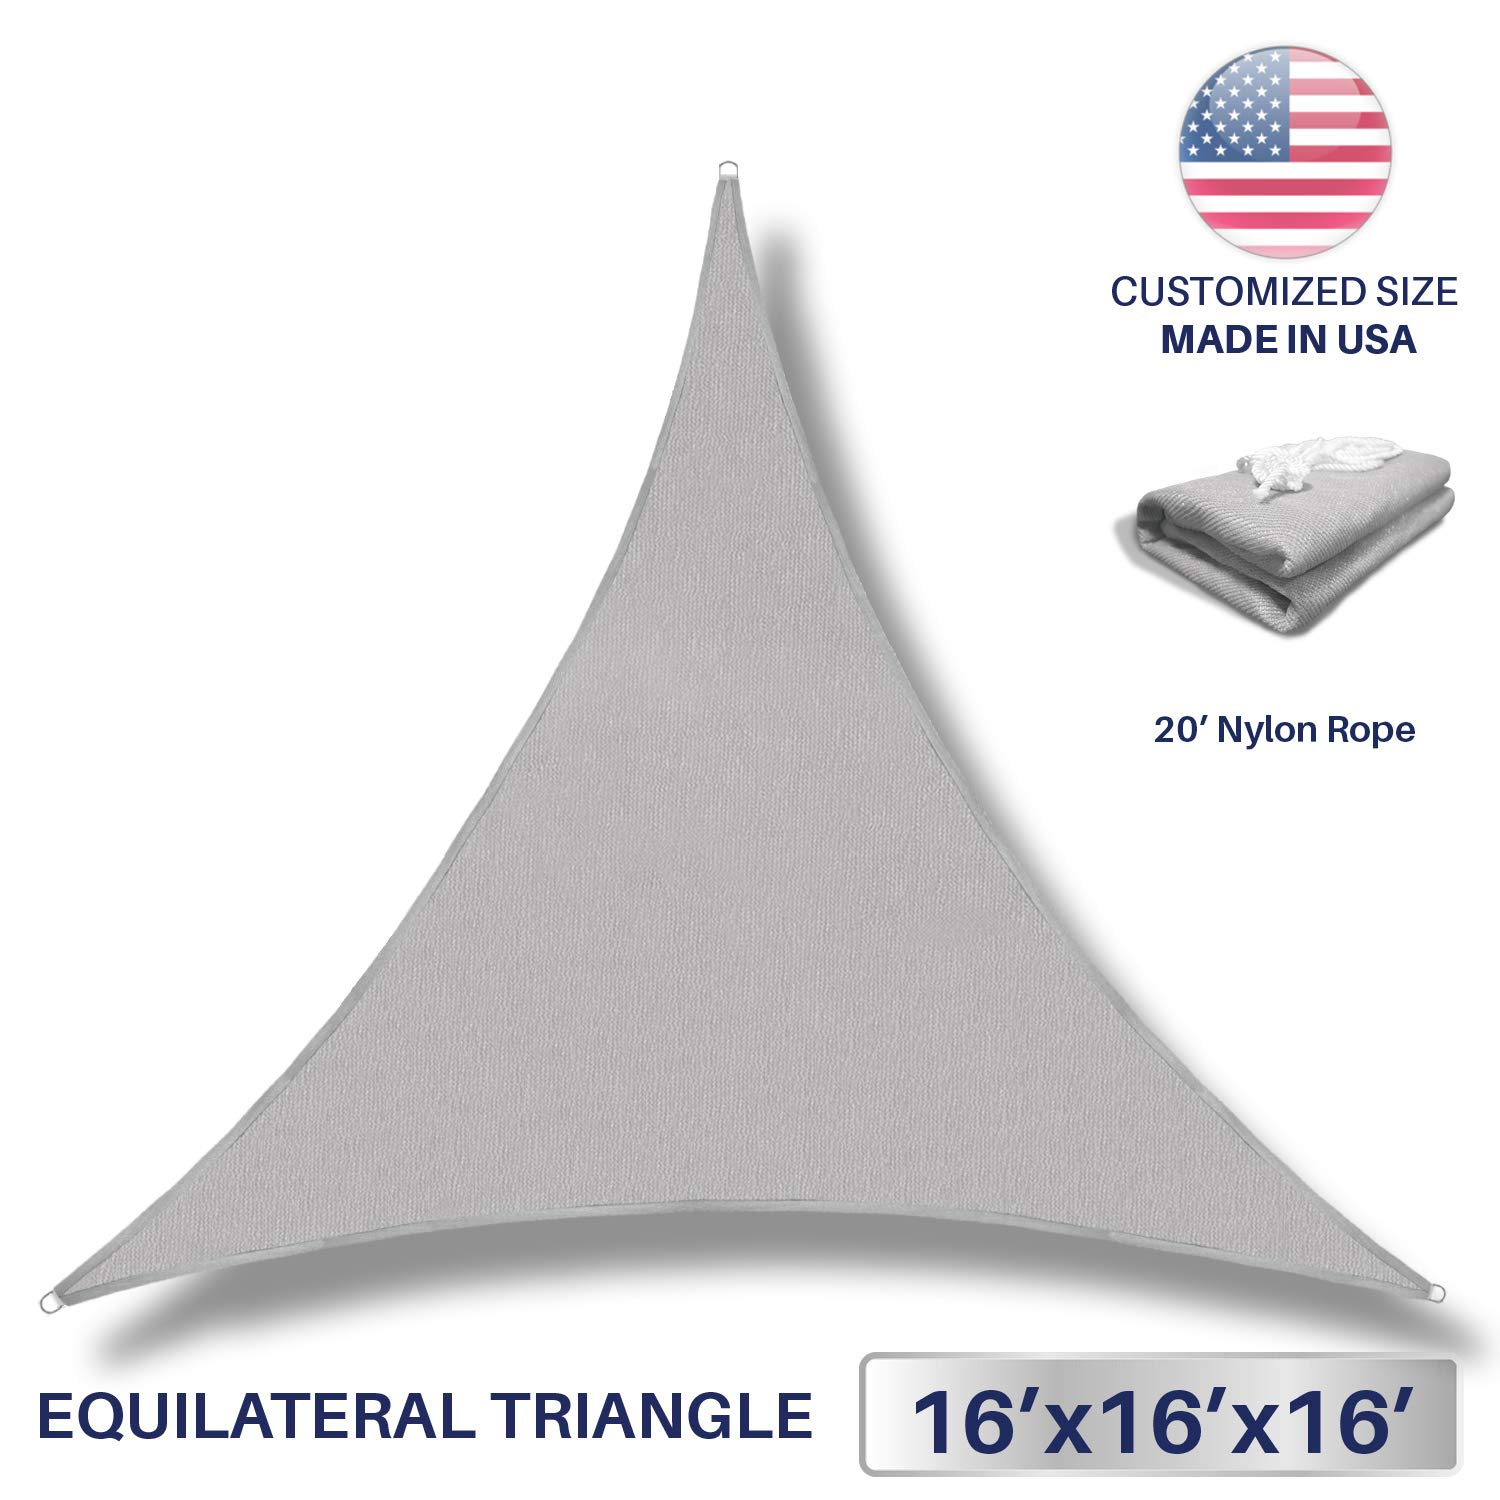 Windscreen4less 16' x 16' x 16' Sun Shade Sail Canopy in Light Grey with Commercial Grade (3 Year Warranty) Customized by Windscreen4less